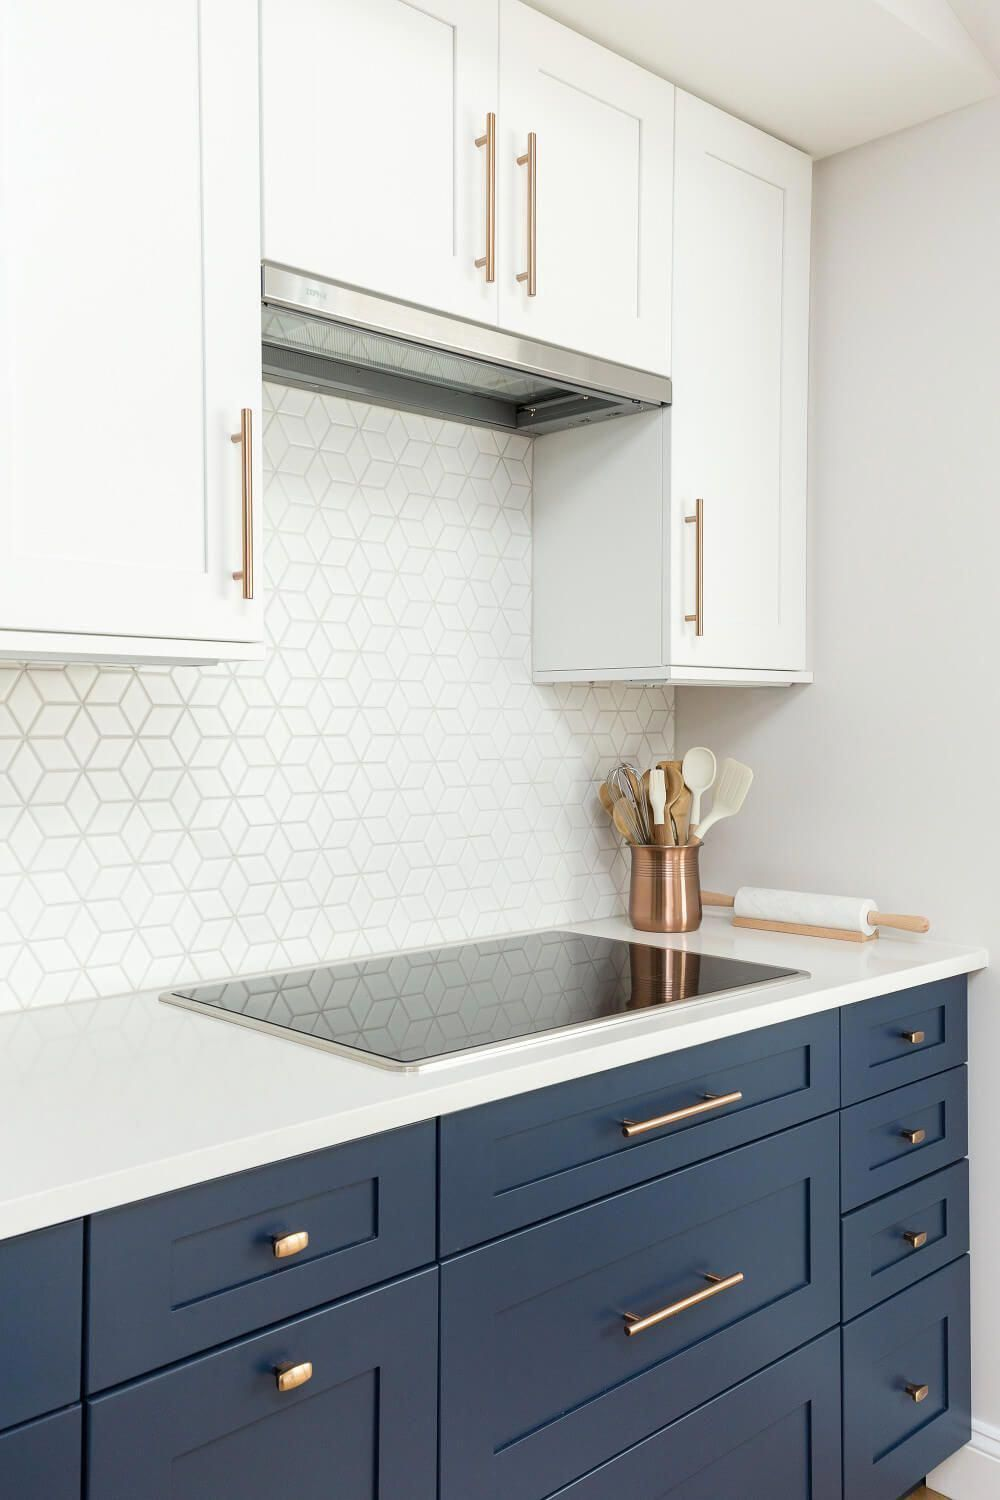 Kitchen With New White & Navy Shaker Cabinets, White